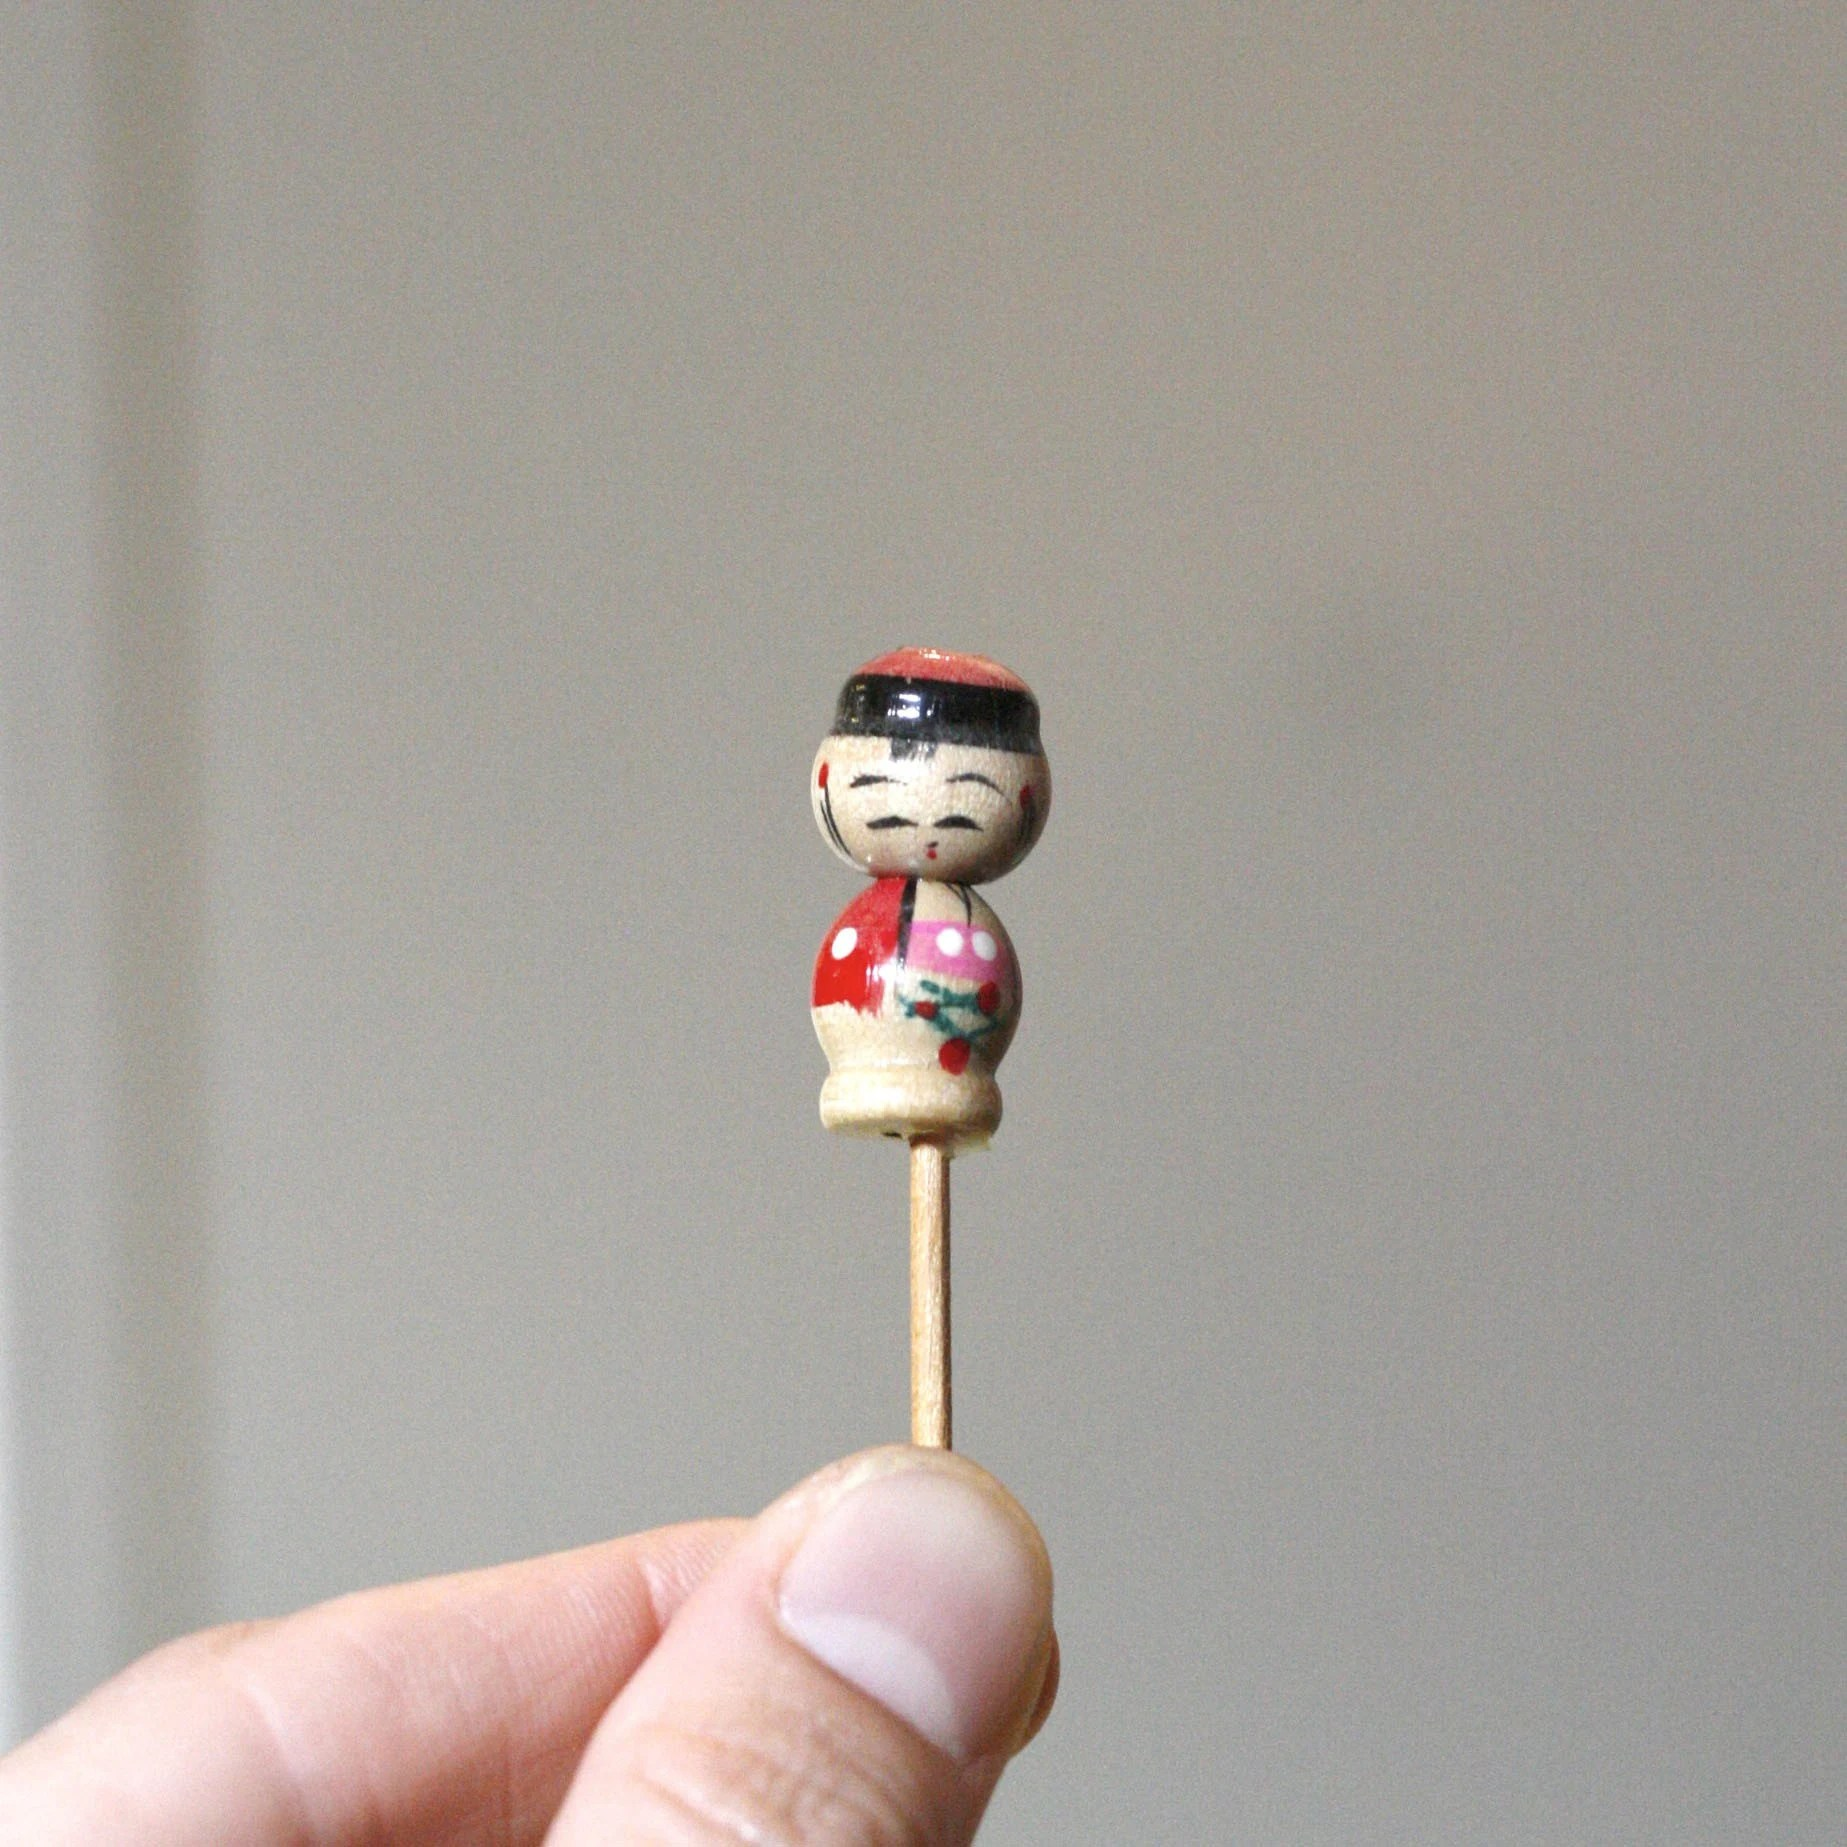 Novelty Toothpicks How To Make A Strong Toothpick Tower Diydoorsdirect Co Uk